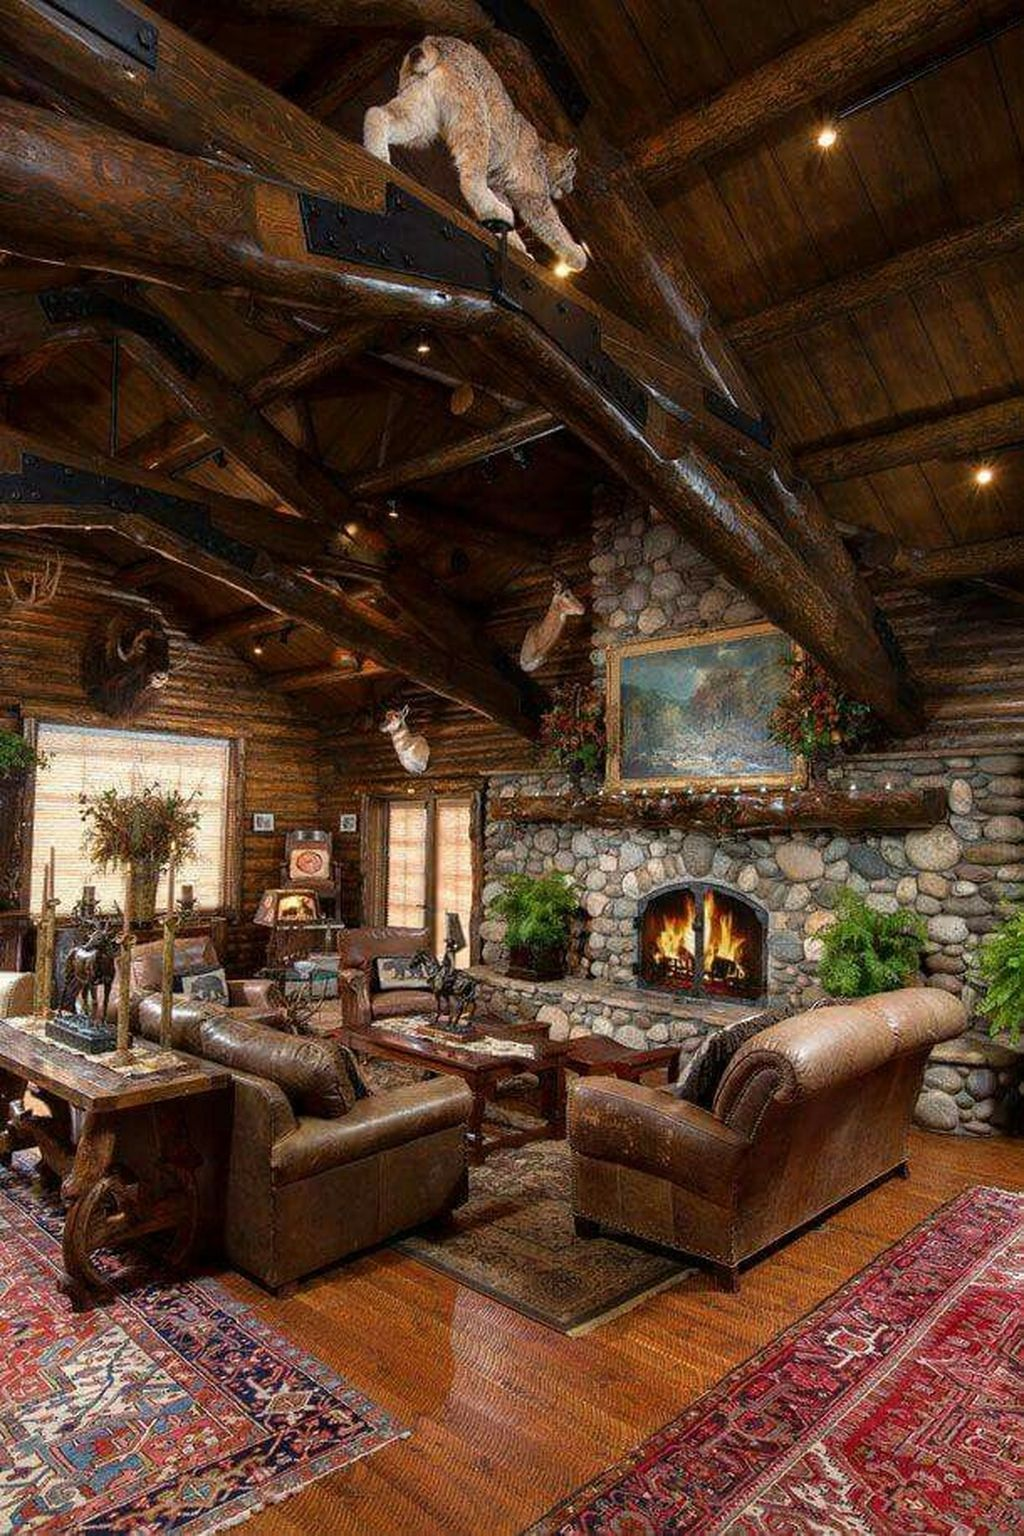 Nice 46 Amazing Lodge Living Room Decorating Ideas More At Https Homystyle Com 2018 08 11 46 Amazing Lodge Living Rustic House Log Cabin Living Cabin Living